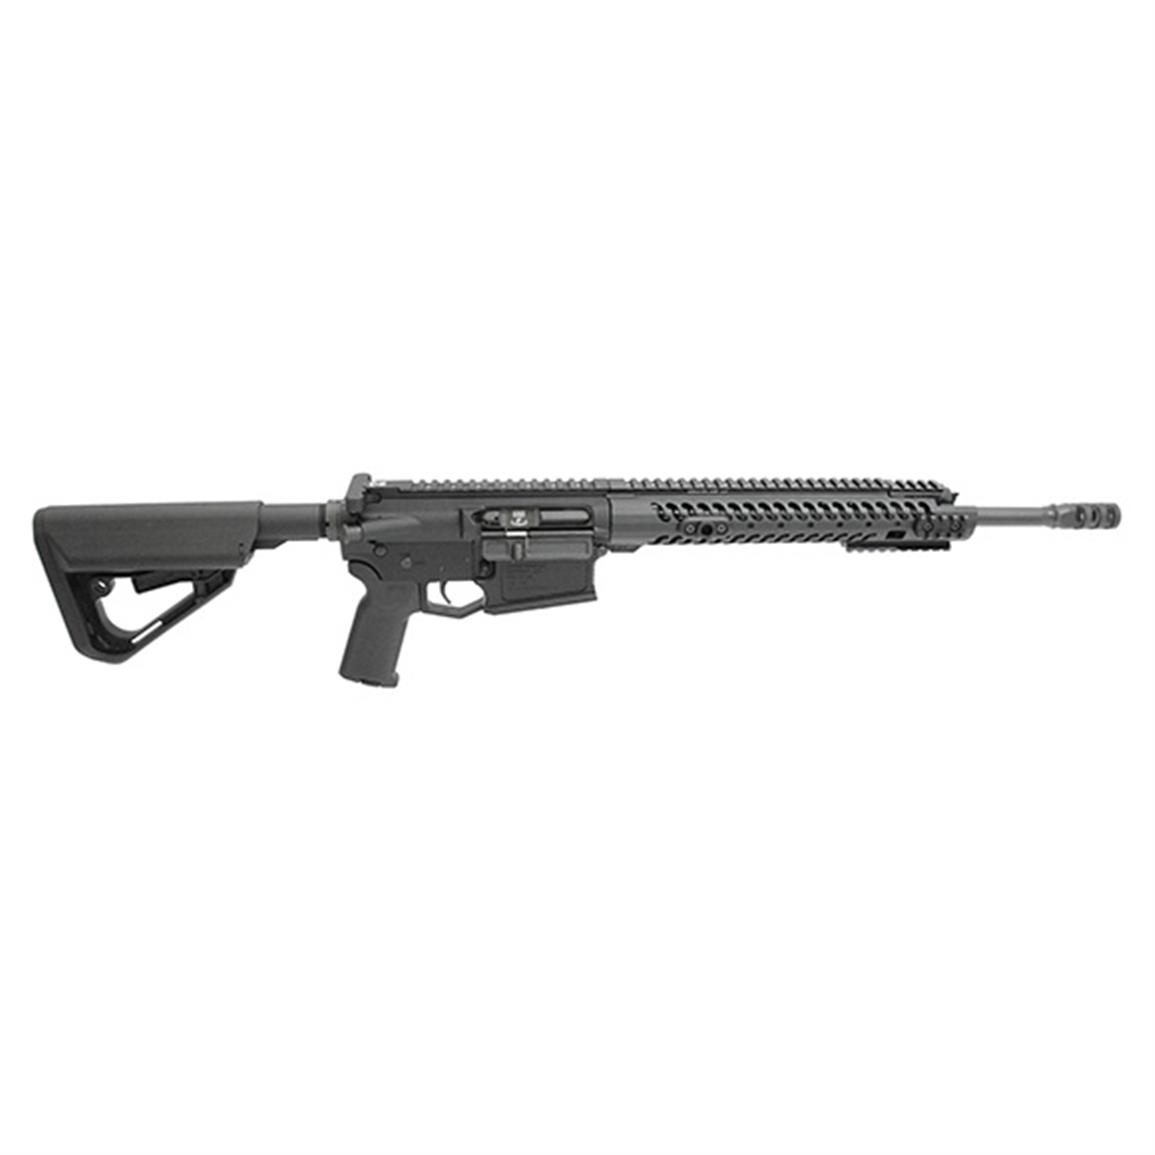 "Adams Arms Small Frame Patrol Battle Rifle, Semi-Automatic, .308 Winchester, 16"" Barrel, 20+1 Rounds"